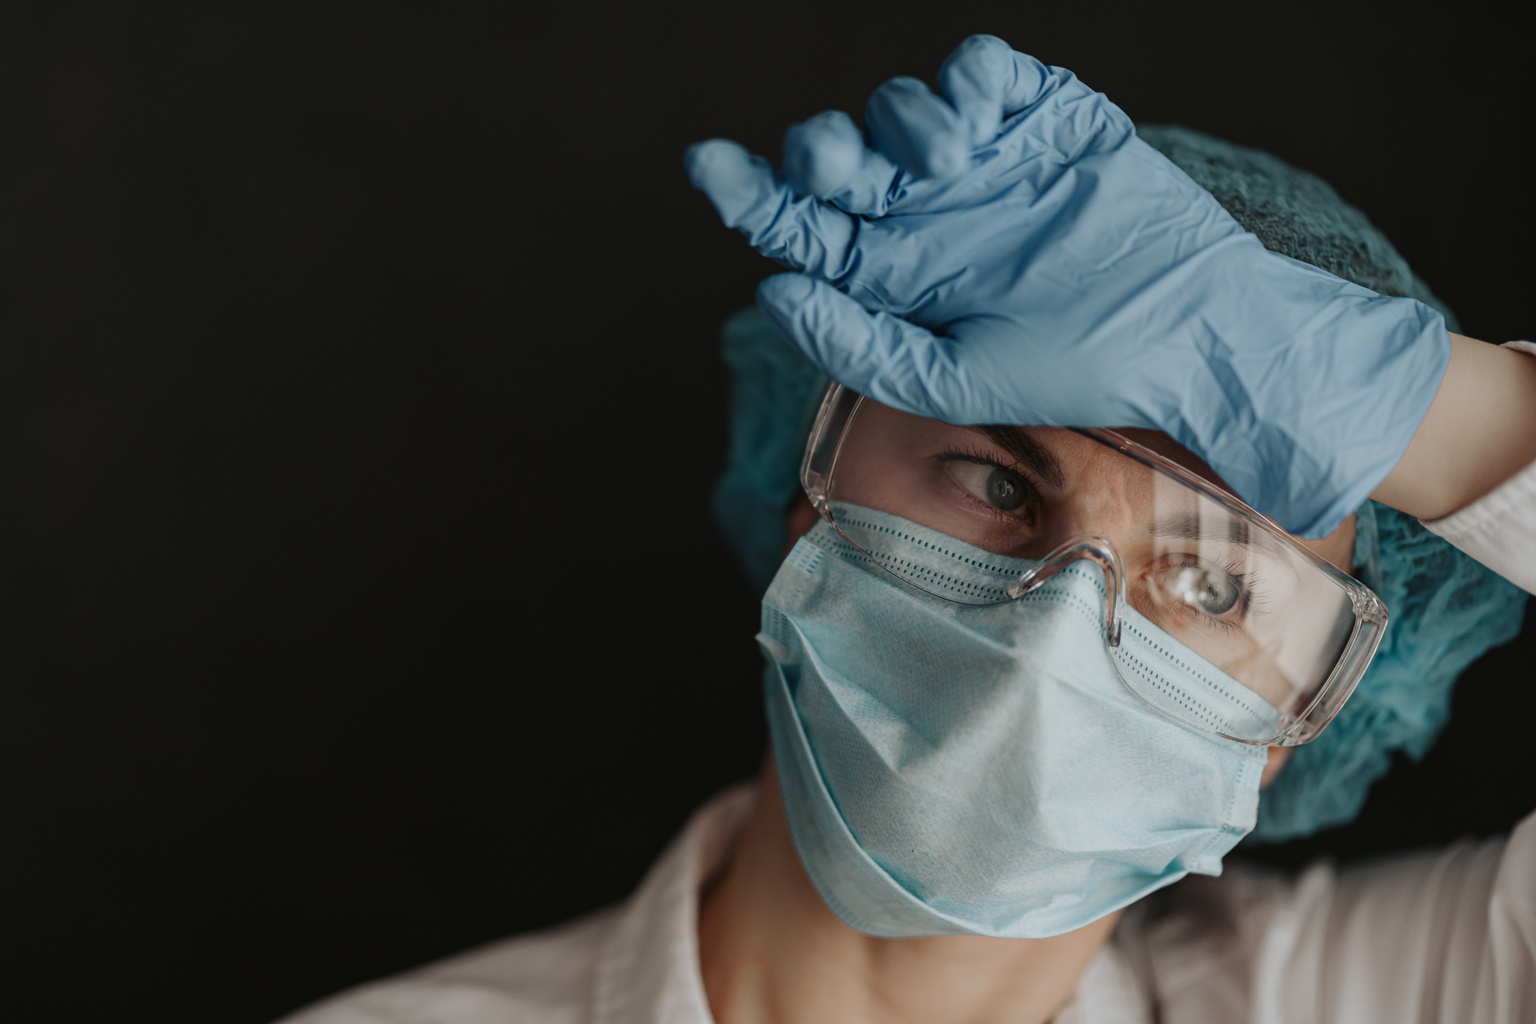 Providing psychological first aid for nurses during the pandemic